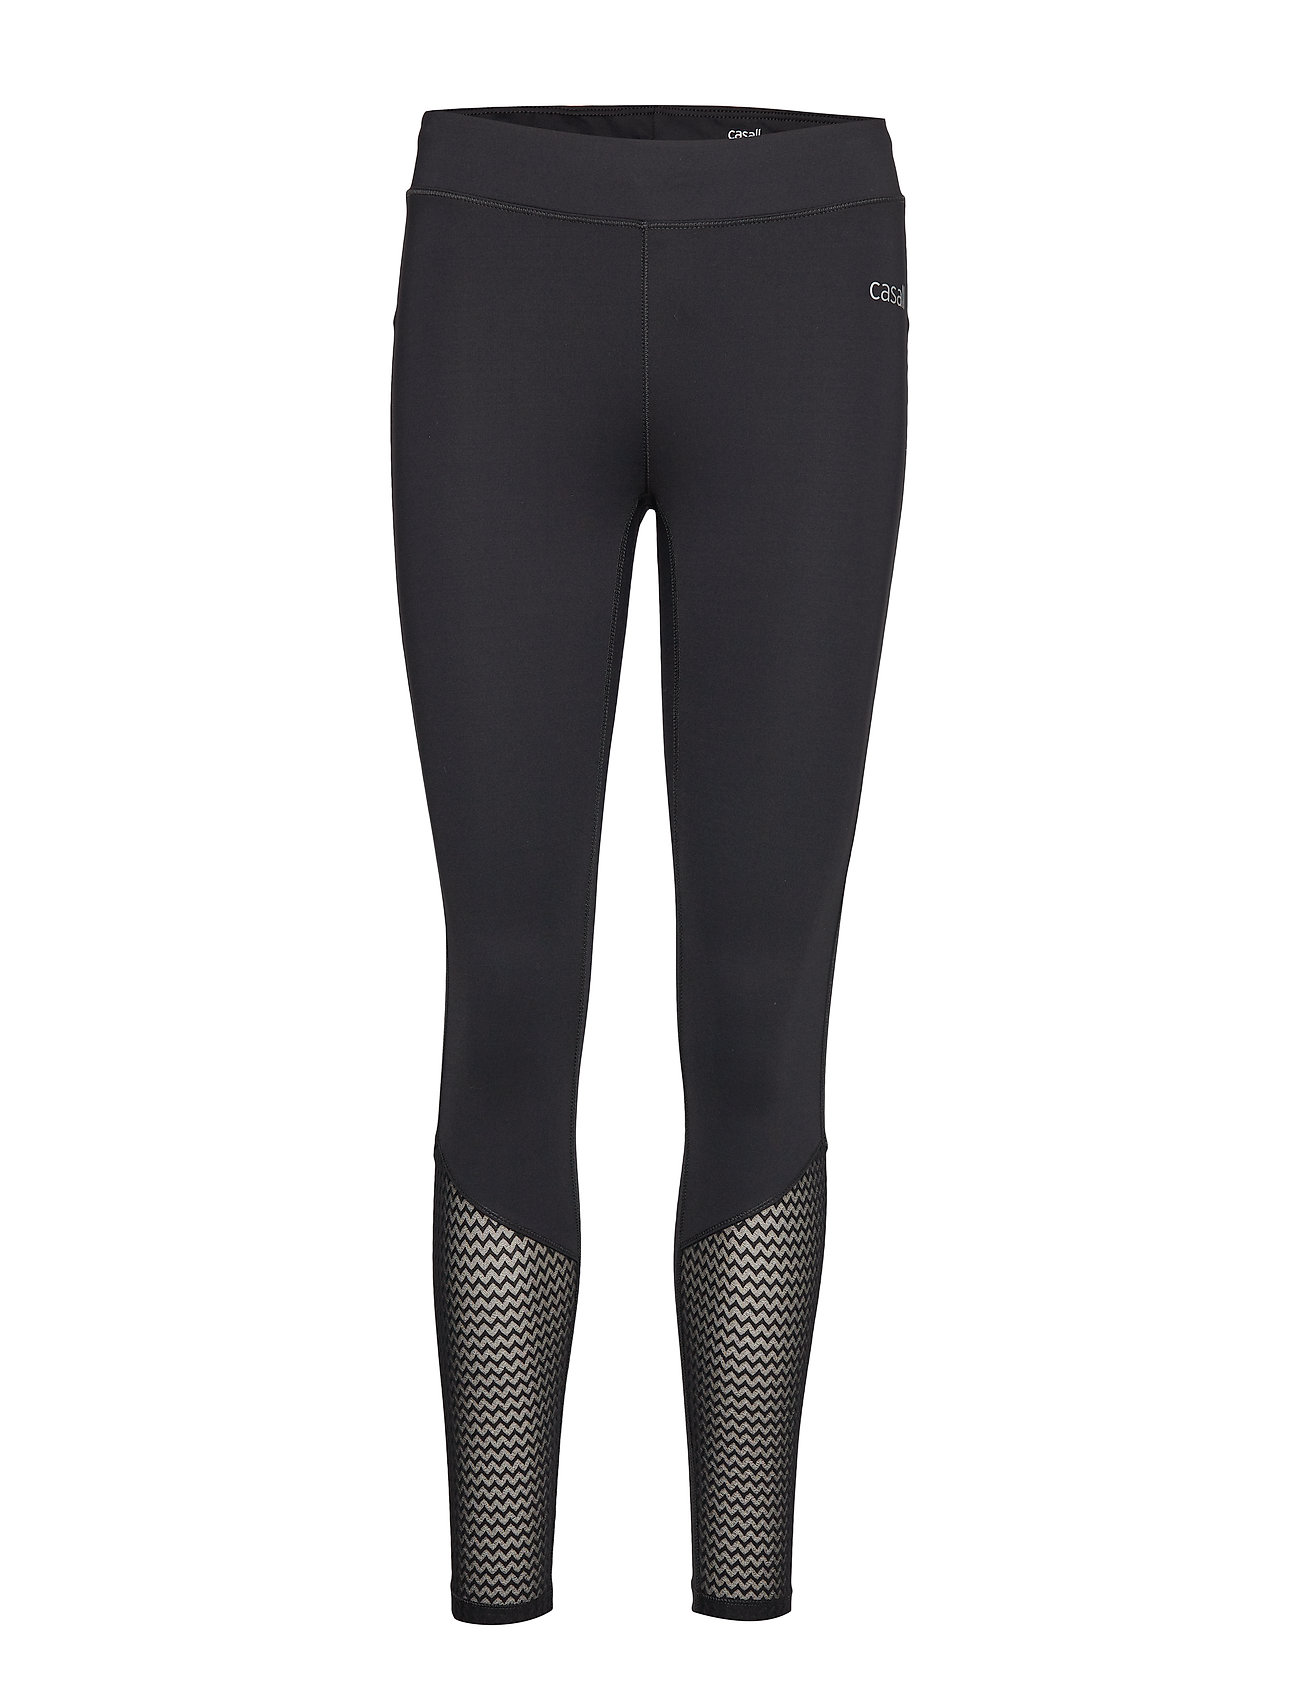 Casall Synergy 7/8 tights - BLACK